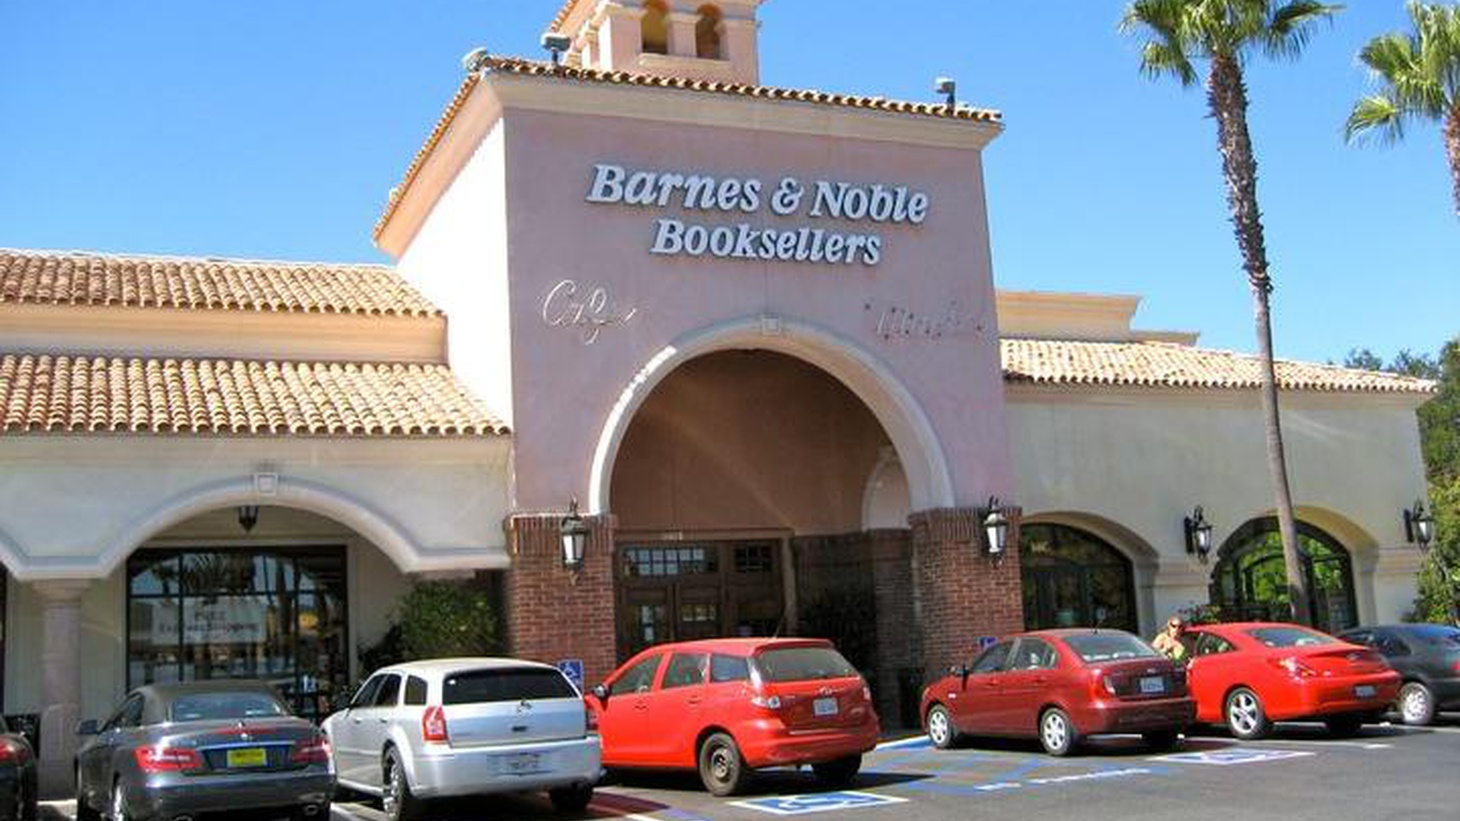 For years, book lovers have been devastated because big chains were squeezing independent bookstores out of business. Now Barnes & Noble is being squeezed out of Encino. The big chain says property owner Rick Caruso raised the rent. Caruso says Barns & Noble wasn't making enough money. We hear from outraged neighborhood readers and browsers, as well as others who mourn the passing of another cultural resource. On our rebroadcast of To the Point, Climate Change: the US versus the Rest of the World.